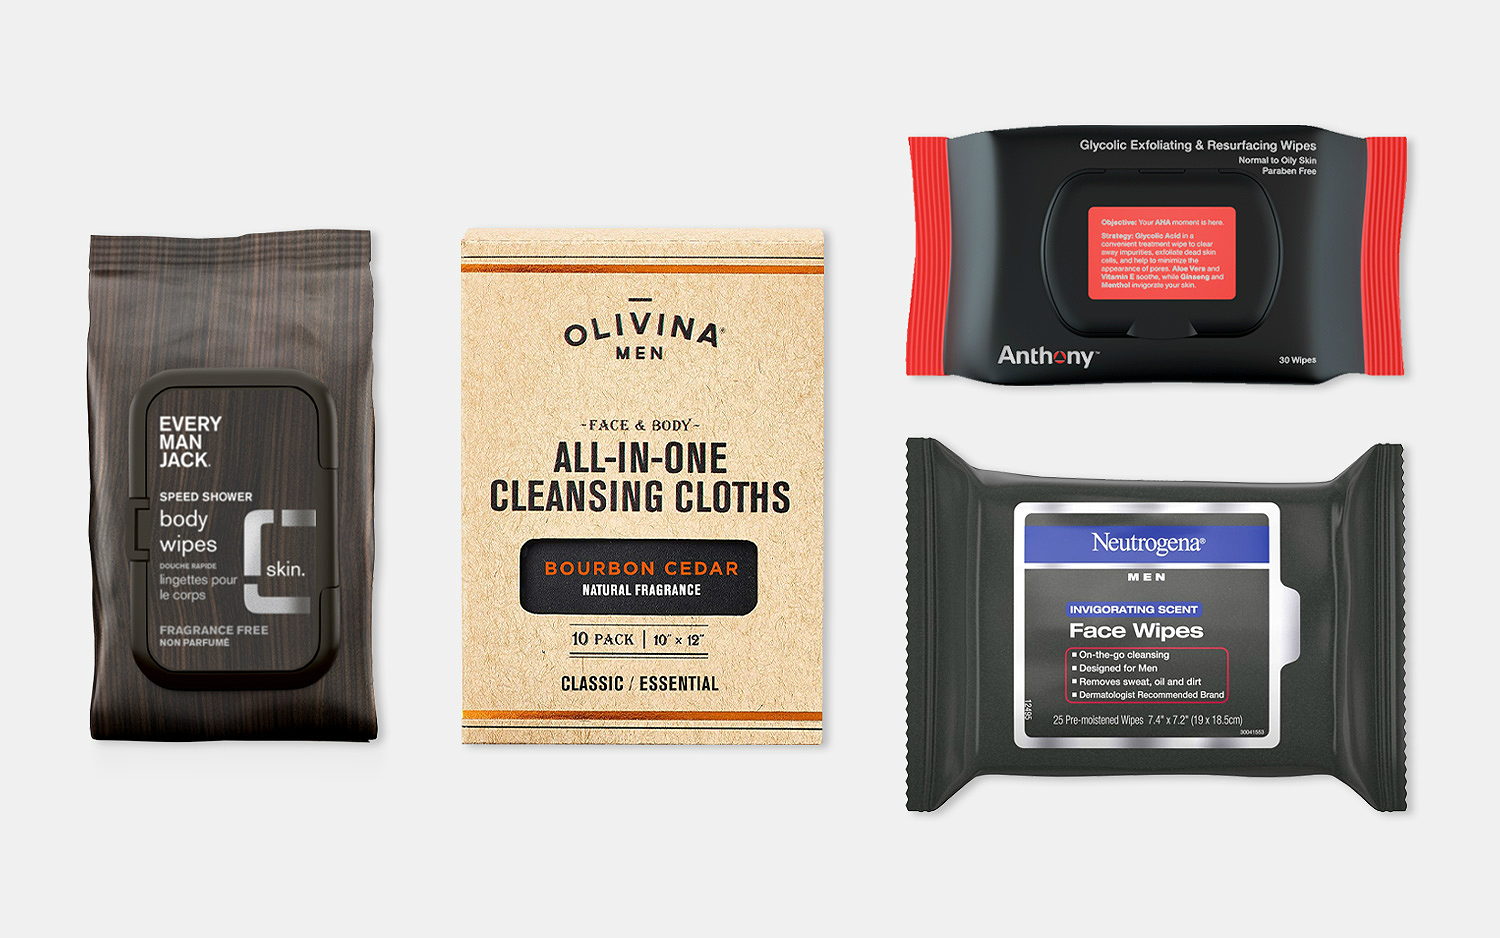 Best Face Wipes for Men